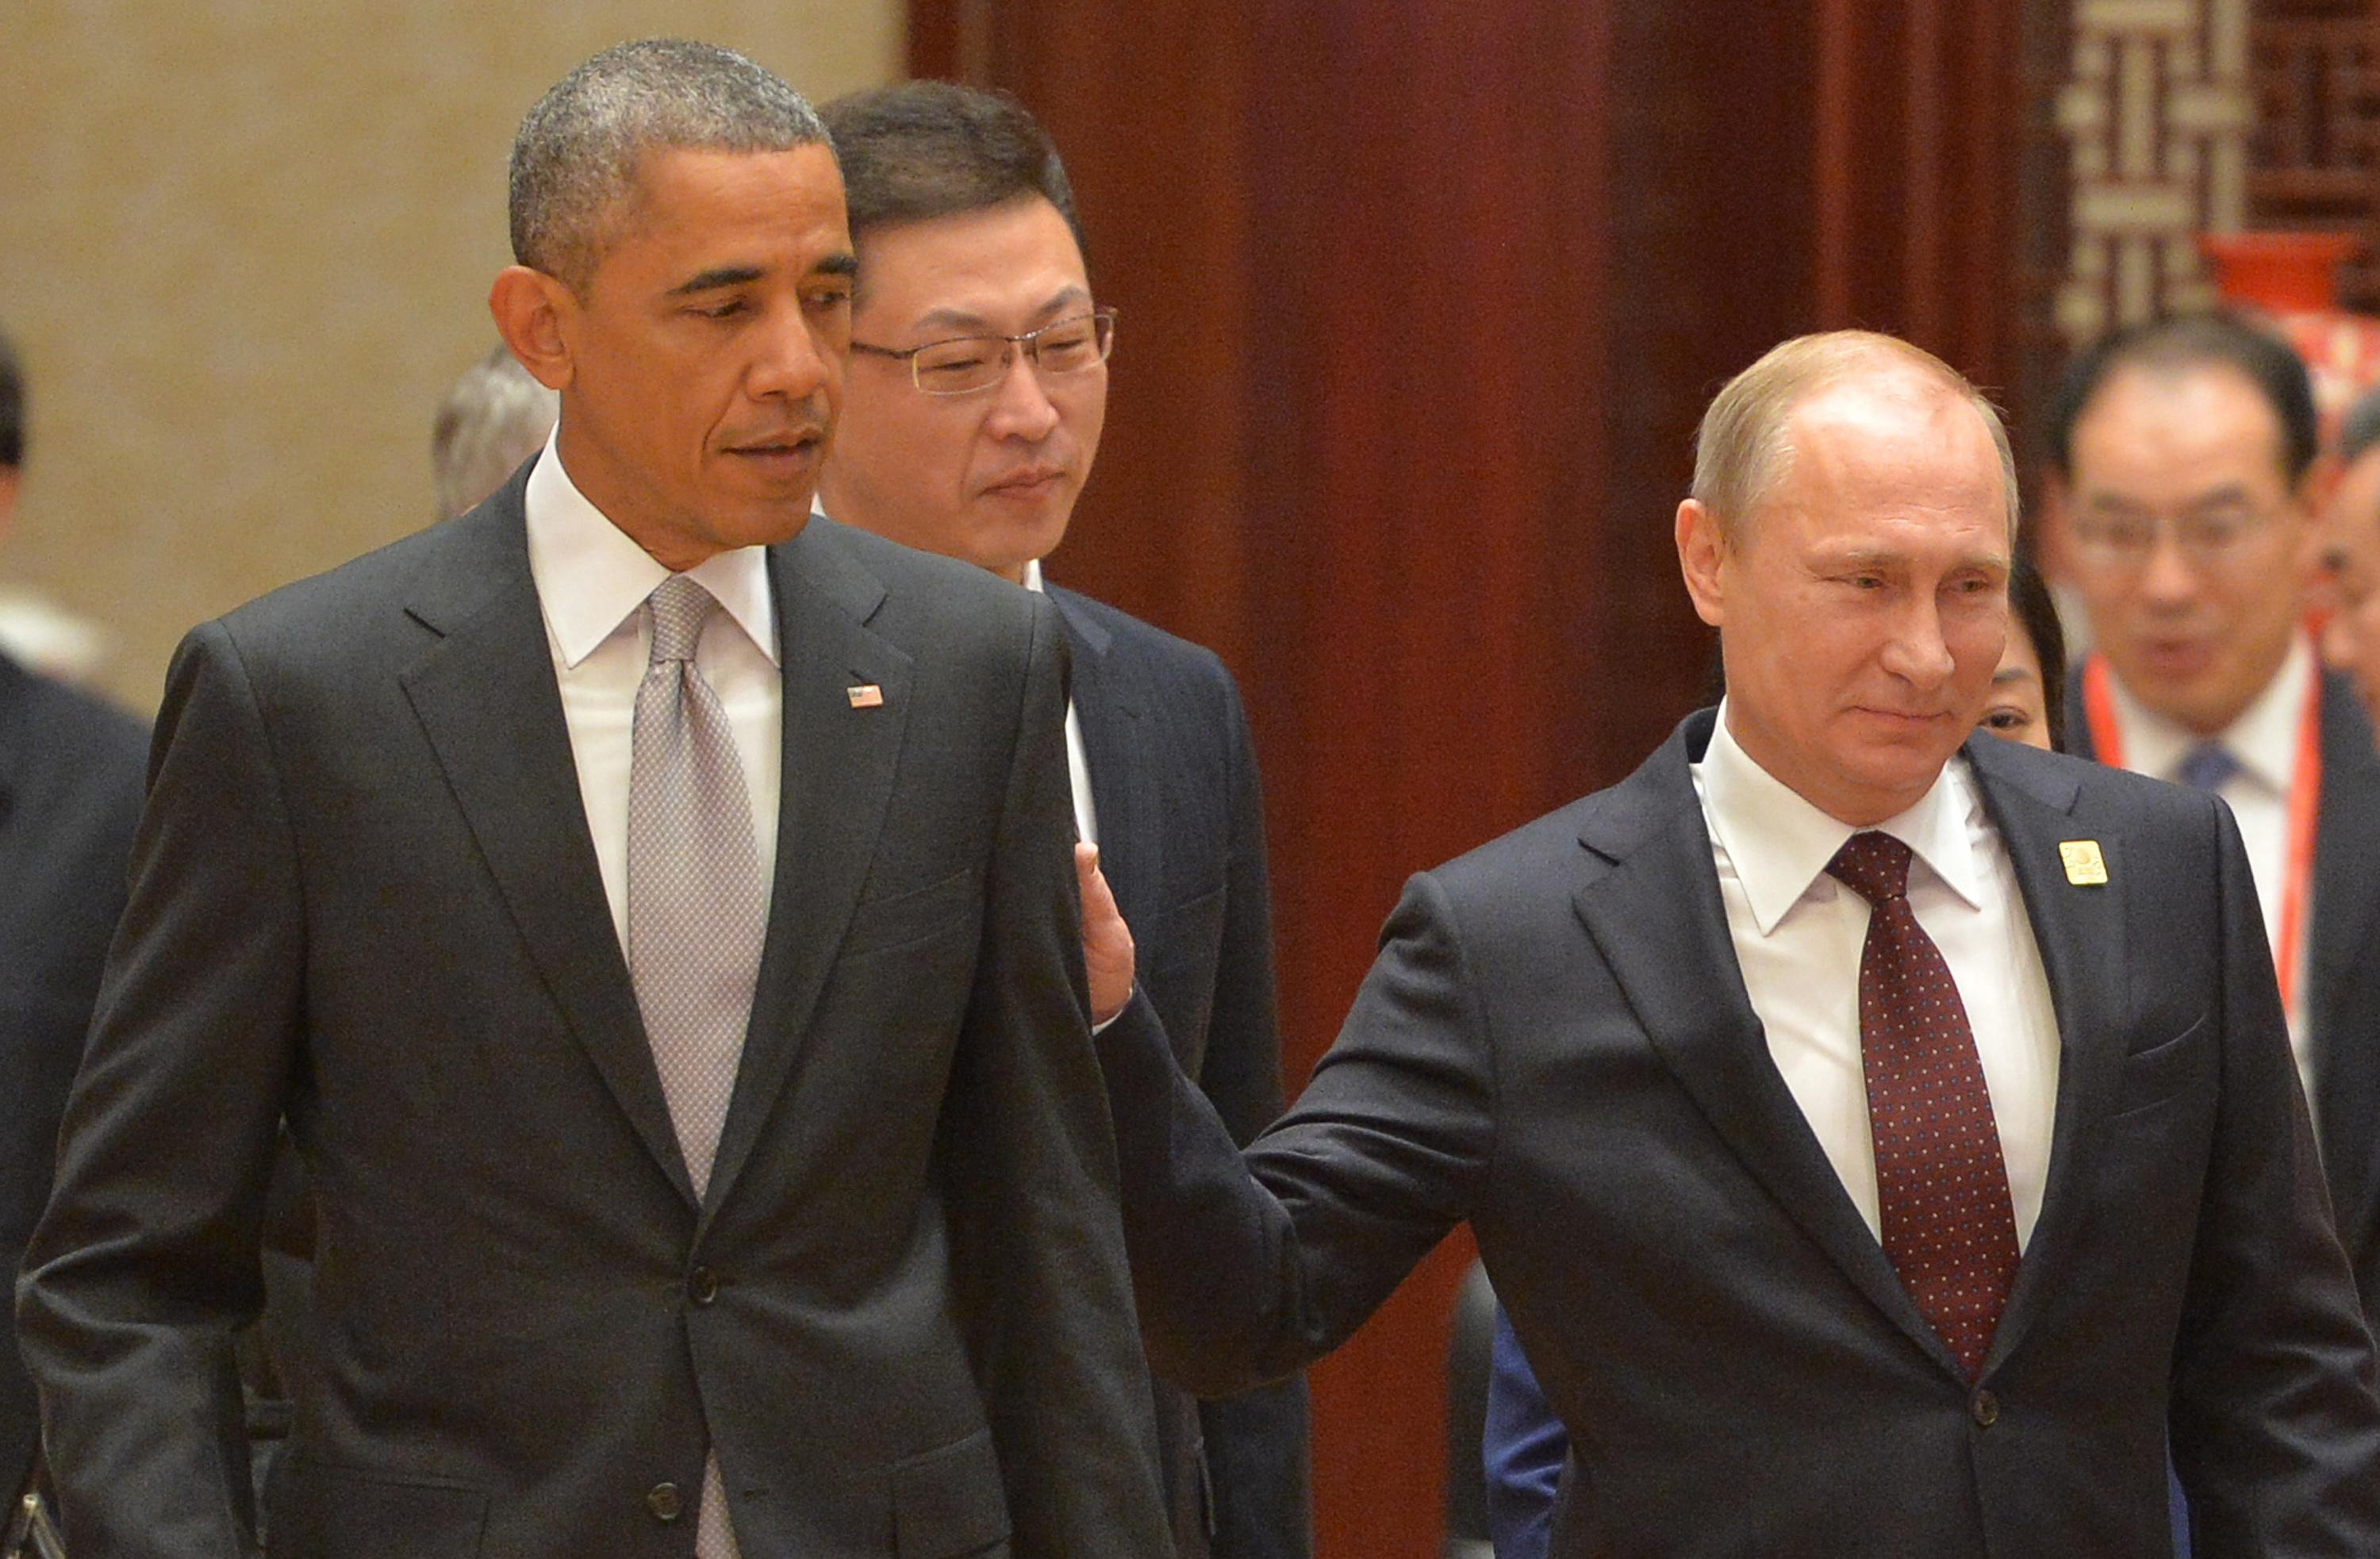 Obama invited to WWII commemorations in Moscow: Kremlin